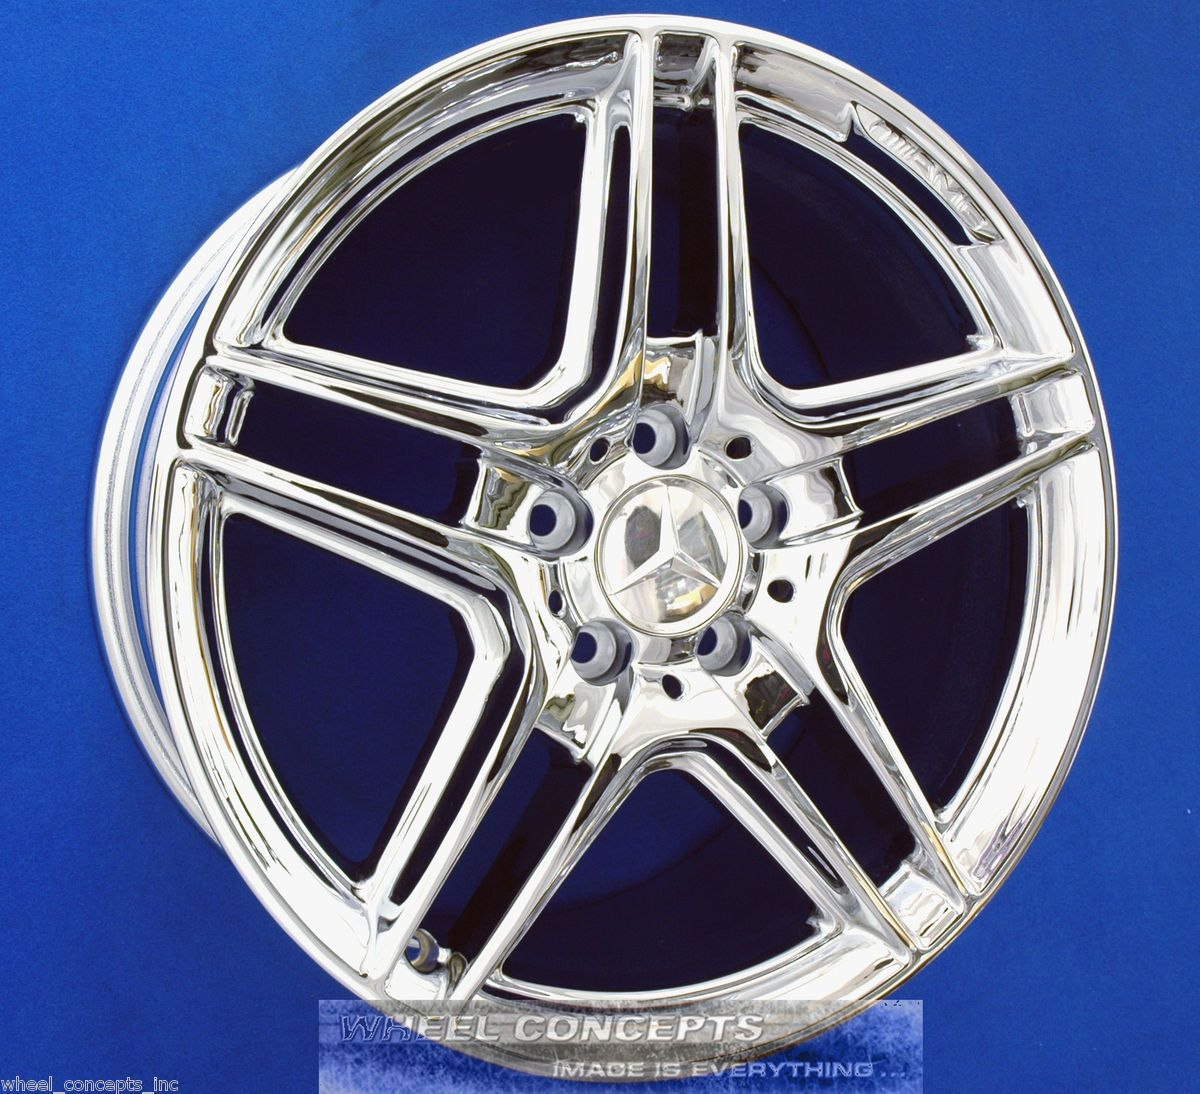 E550 Sedan 18 inch AMG Chrome Wheel Exchange E 350 550 18 Rims